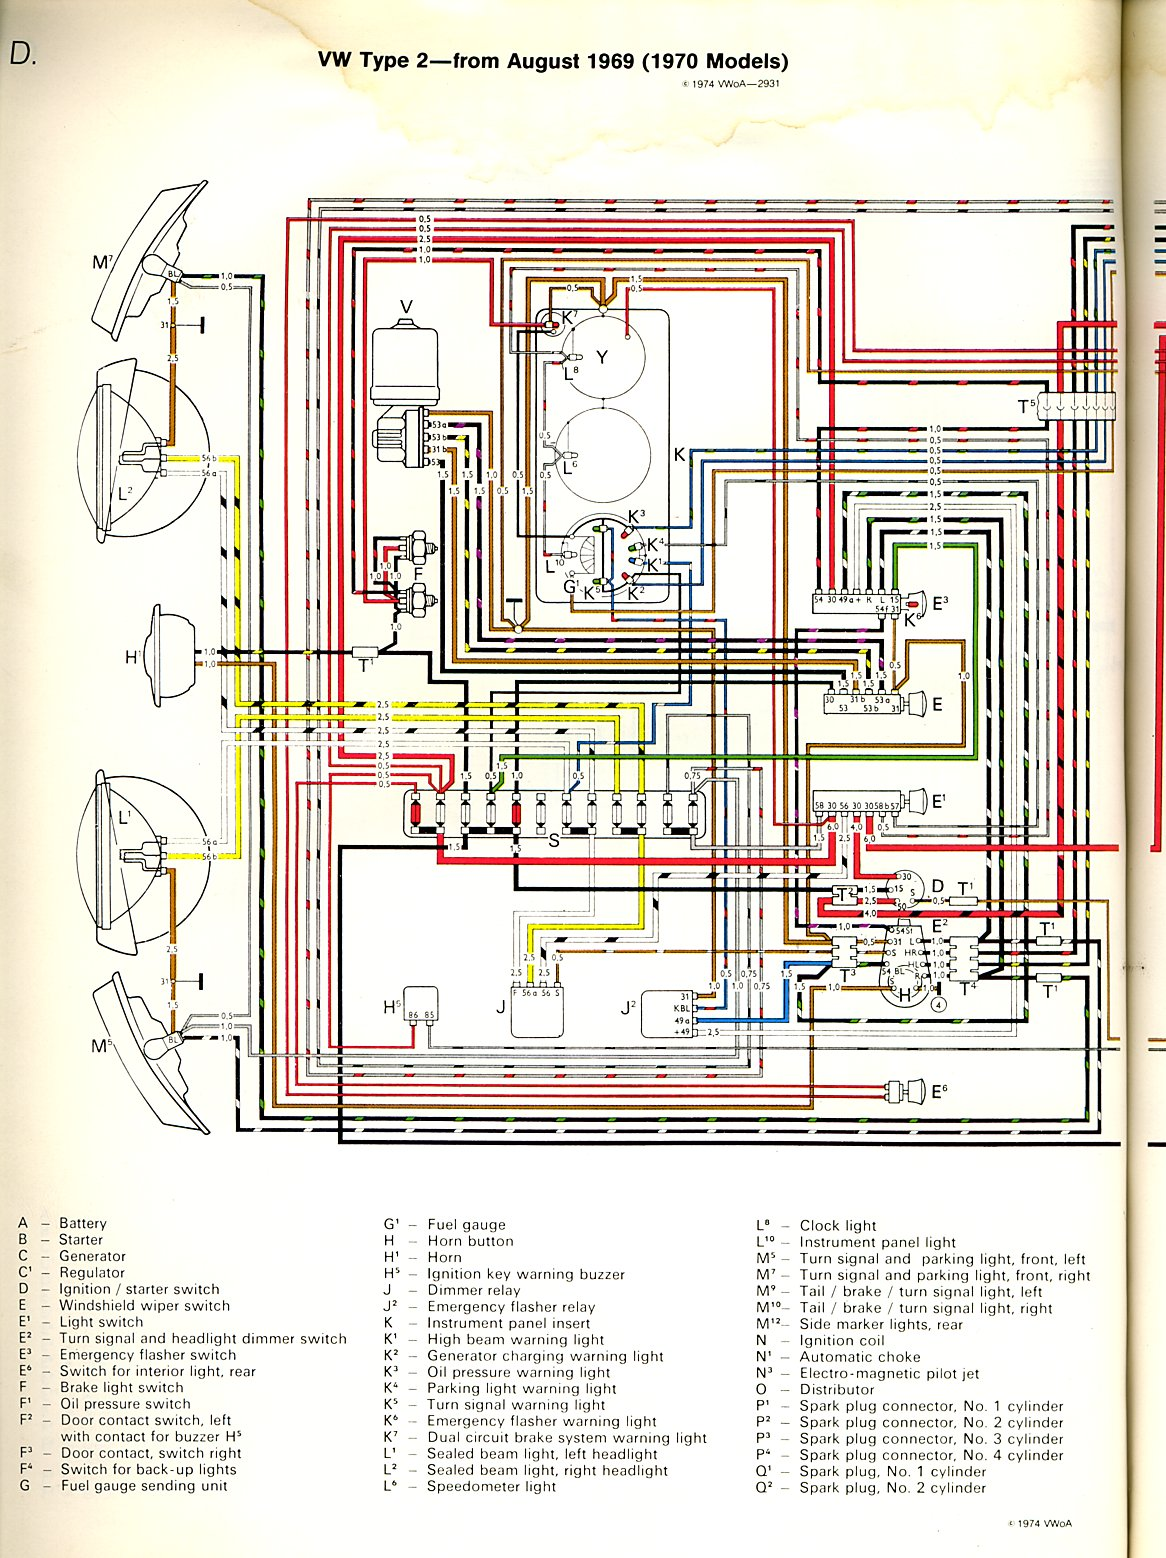 baybus_70a vw bus wiring diagram 1965 vw bus wiring diagram \u2022 wiring diagrams 80 Beetle at soozxer.org